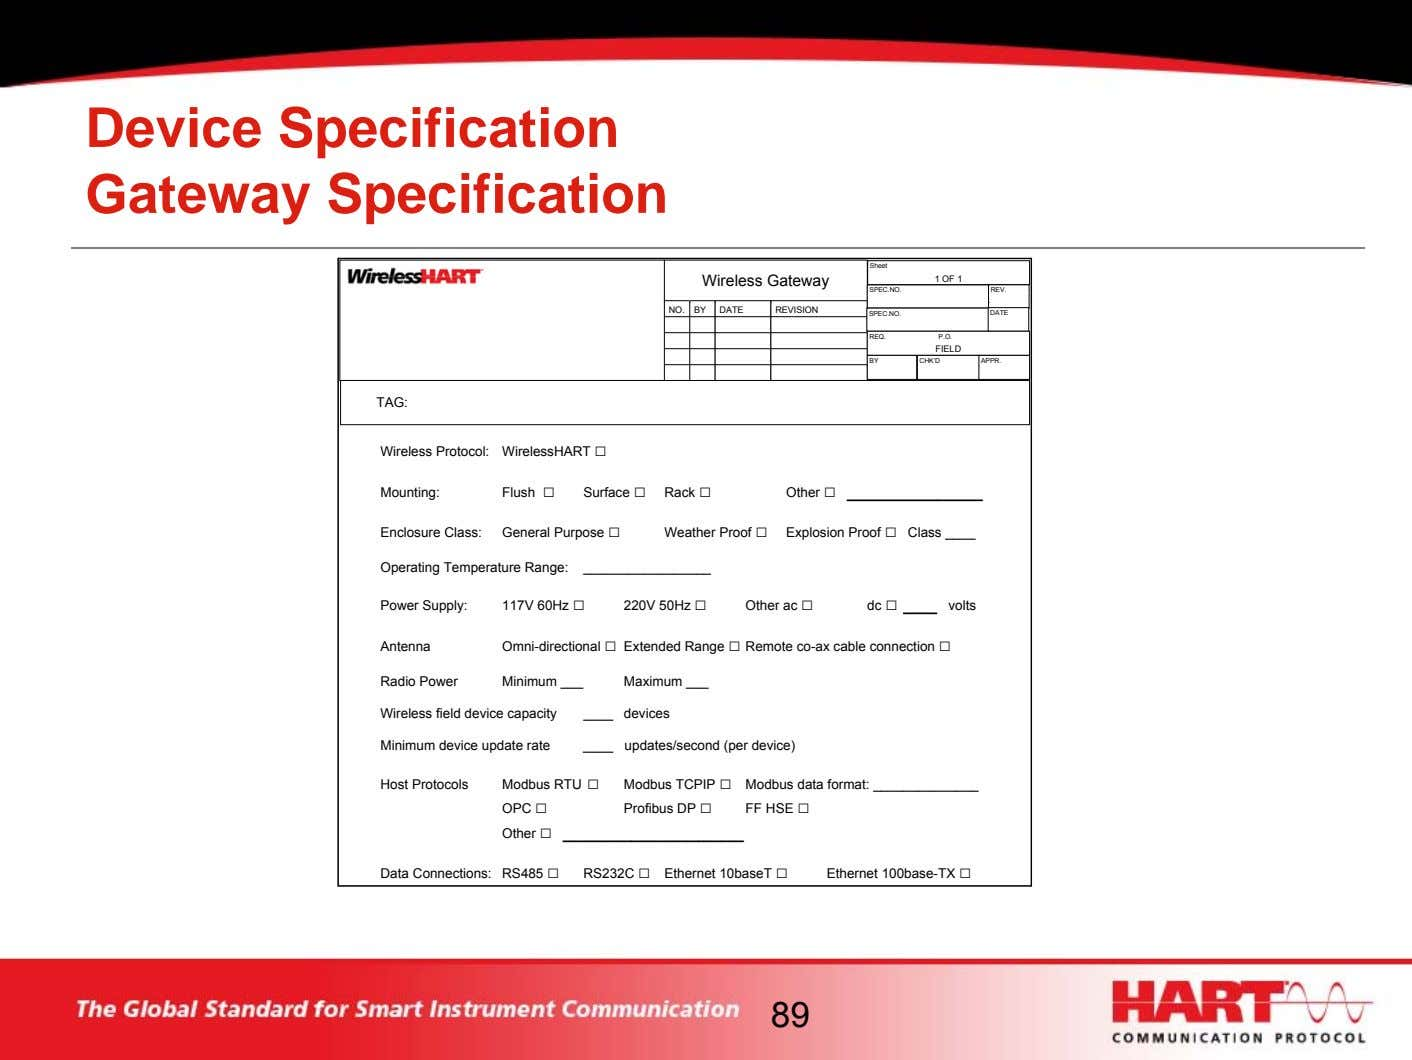 Device Specification Gateway Specification Sheet Wireless Gateway 1 OF 1 SPEC.NO. REV. NO. BY DATE